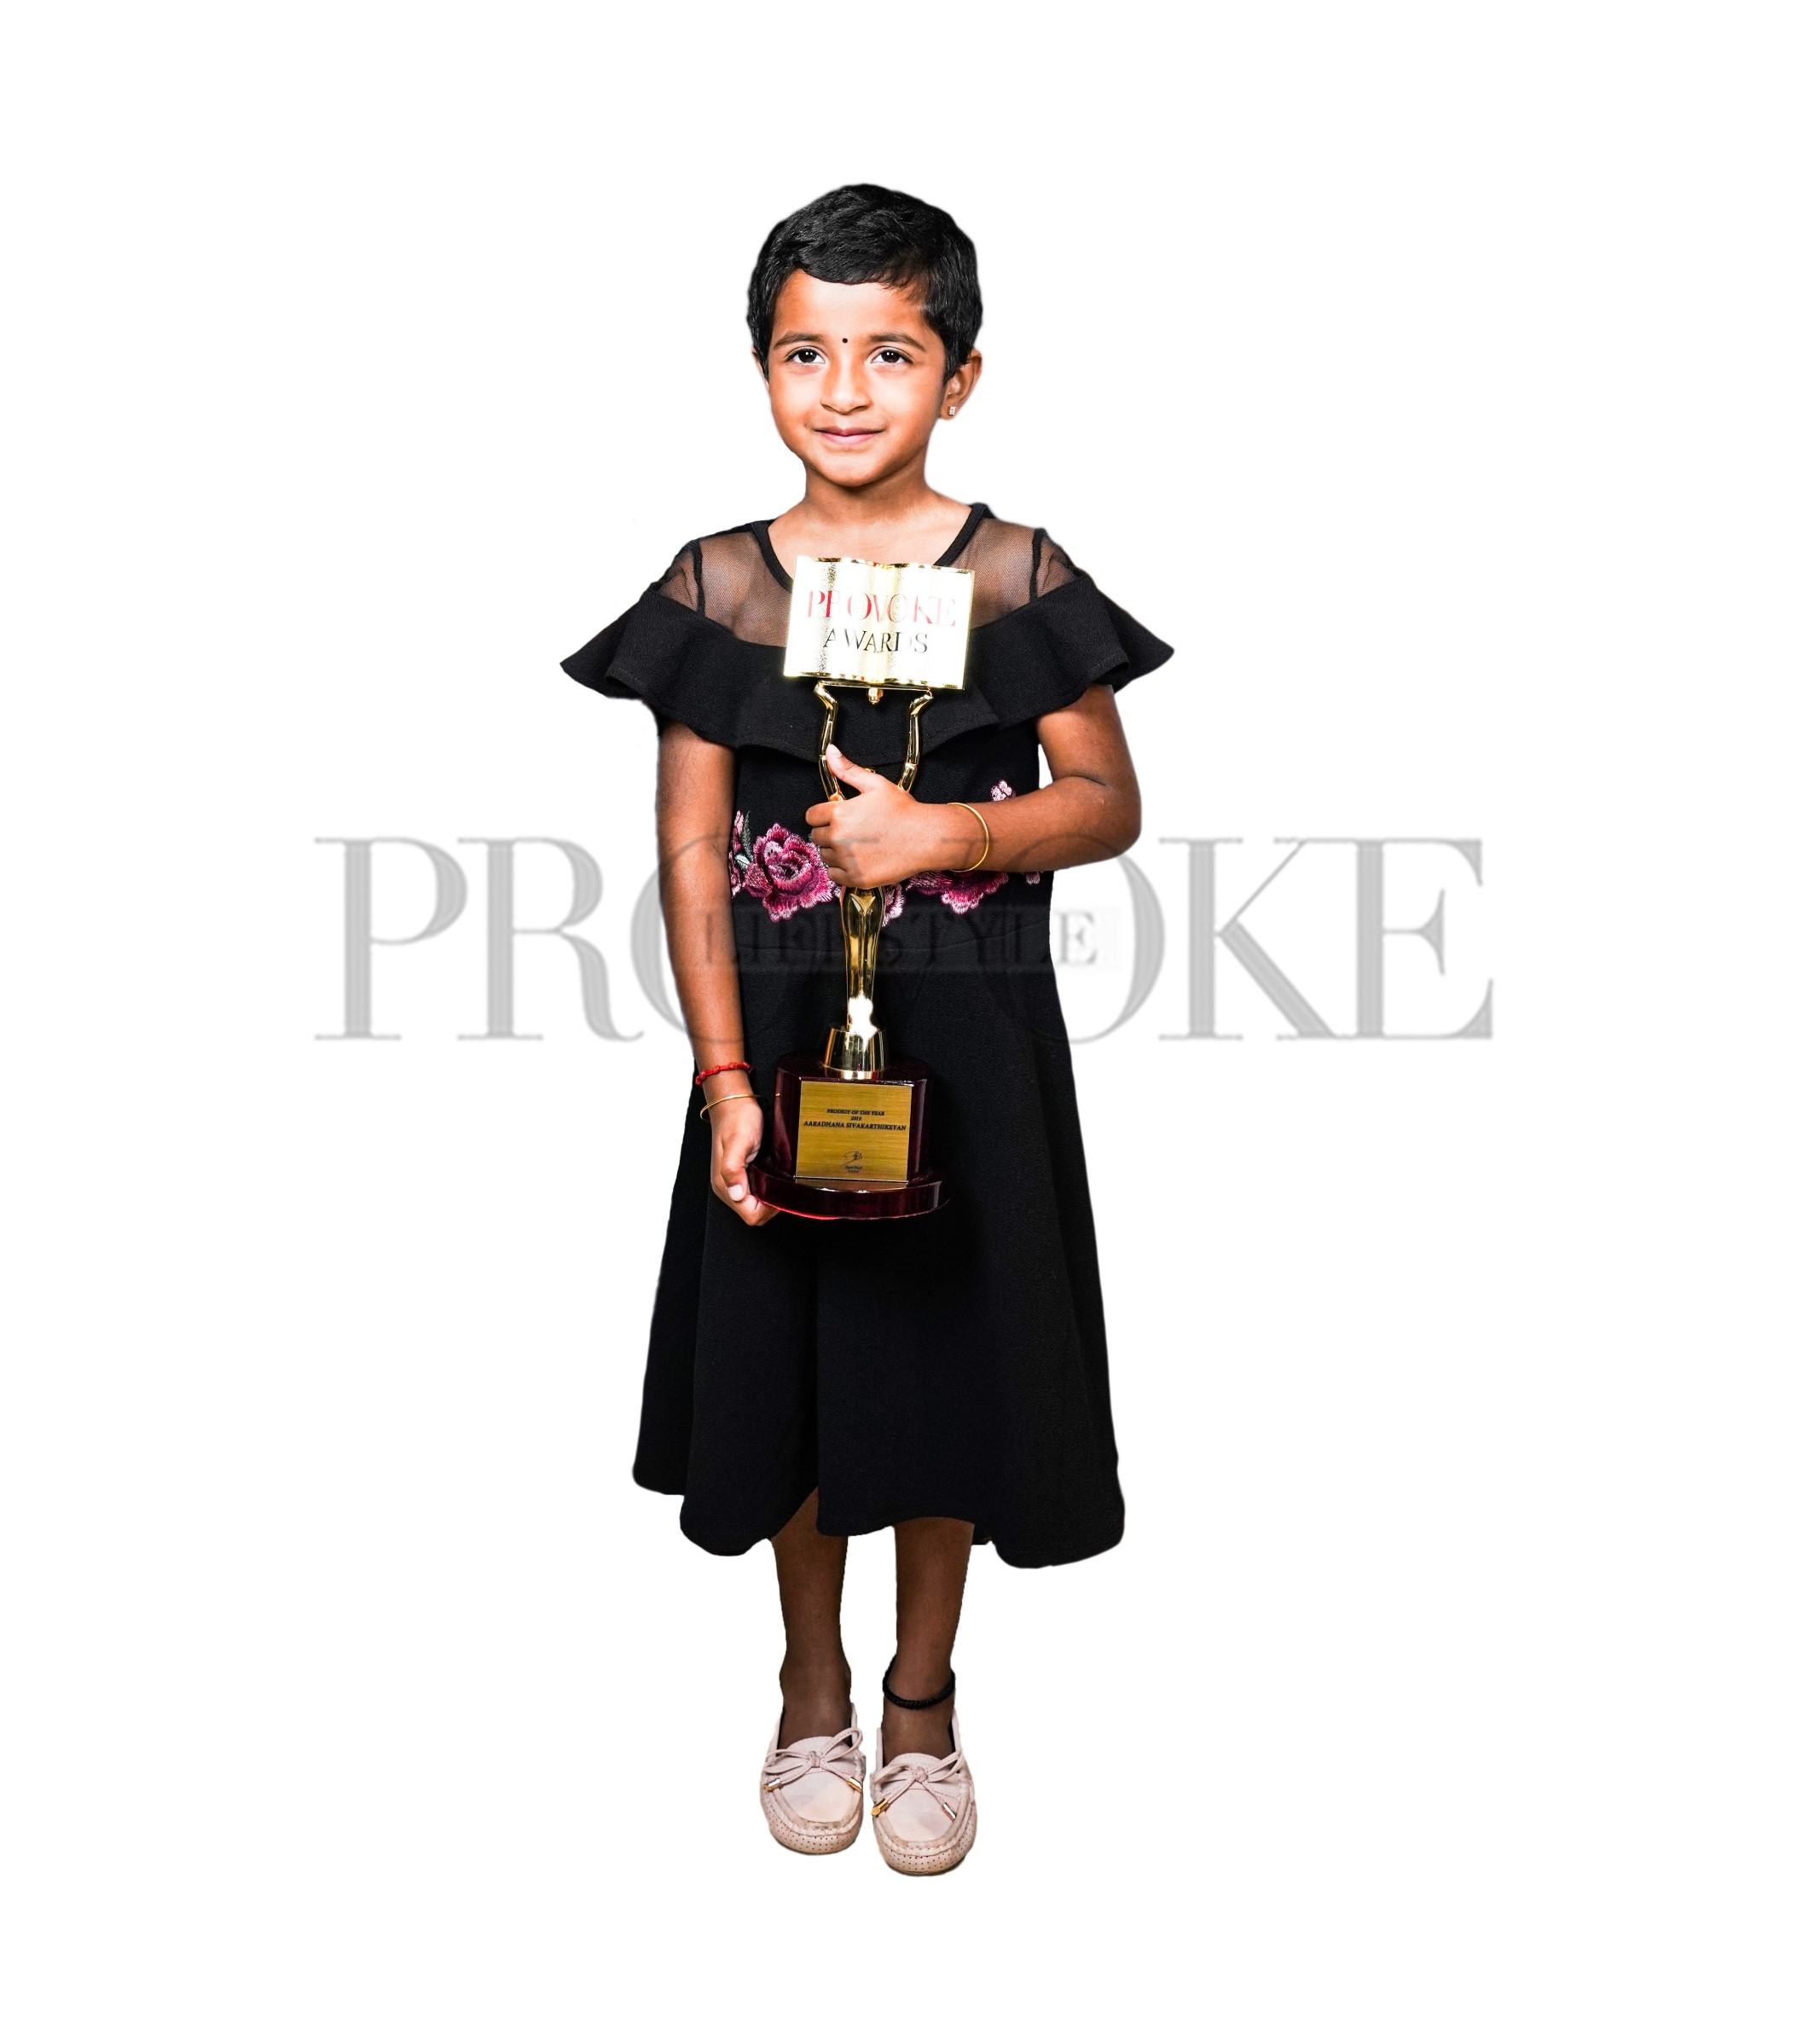 Aaradhana (category PRODIGY OF THE YEAR)